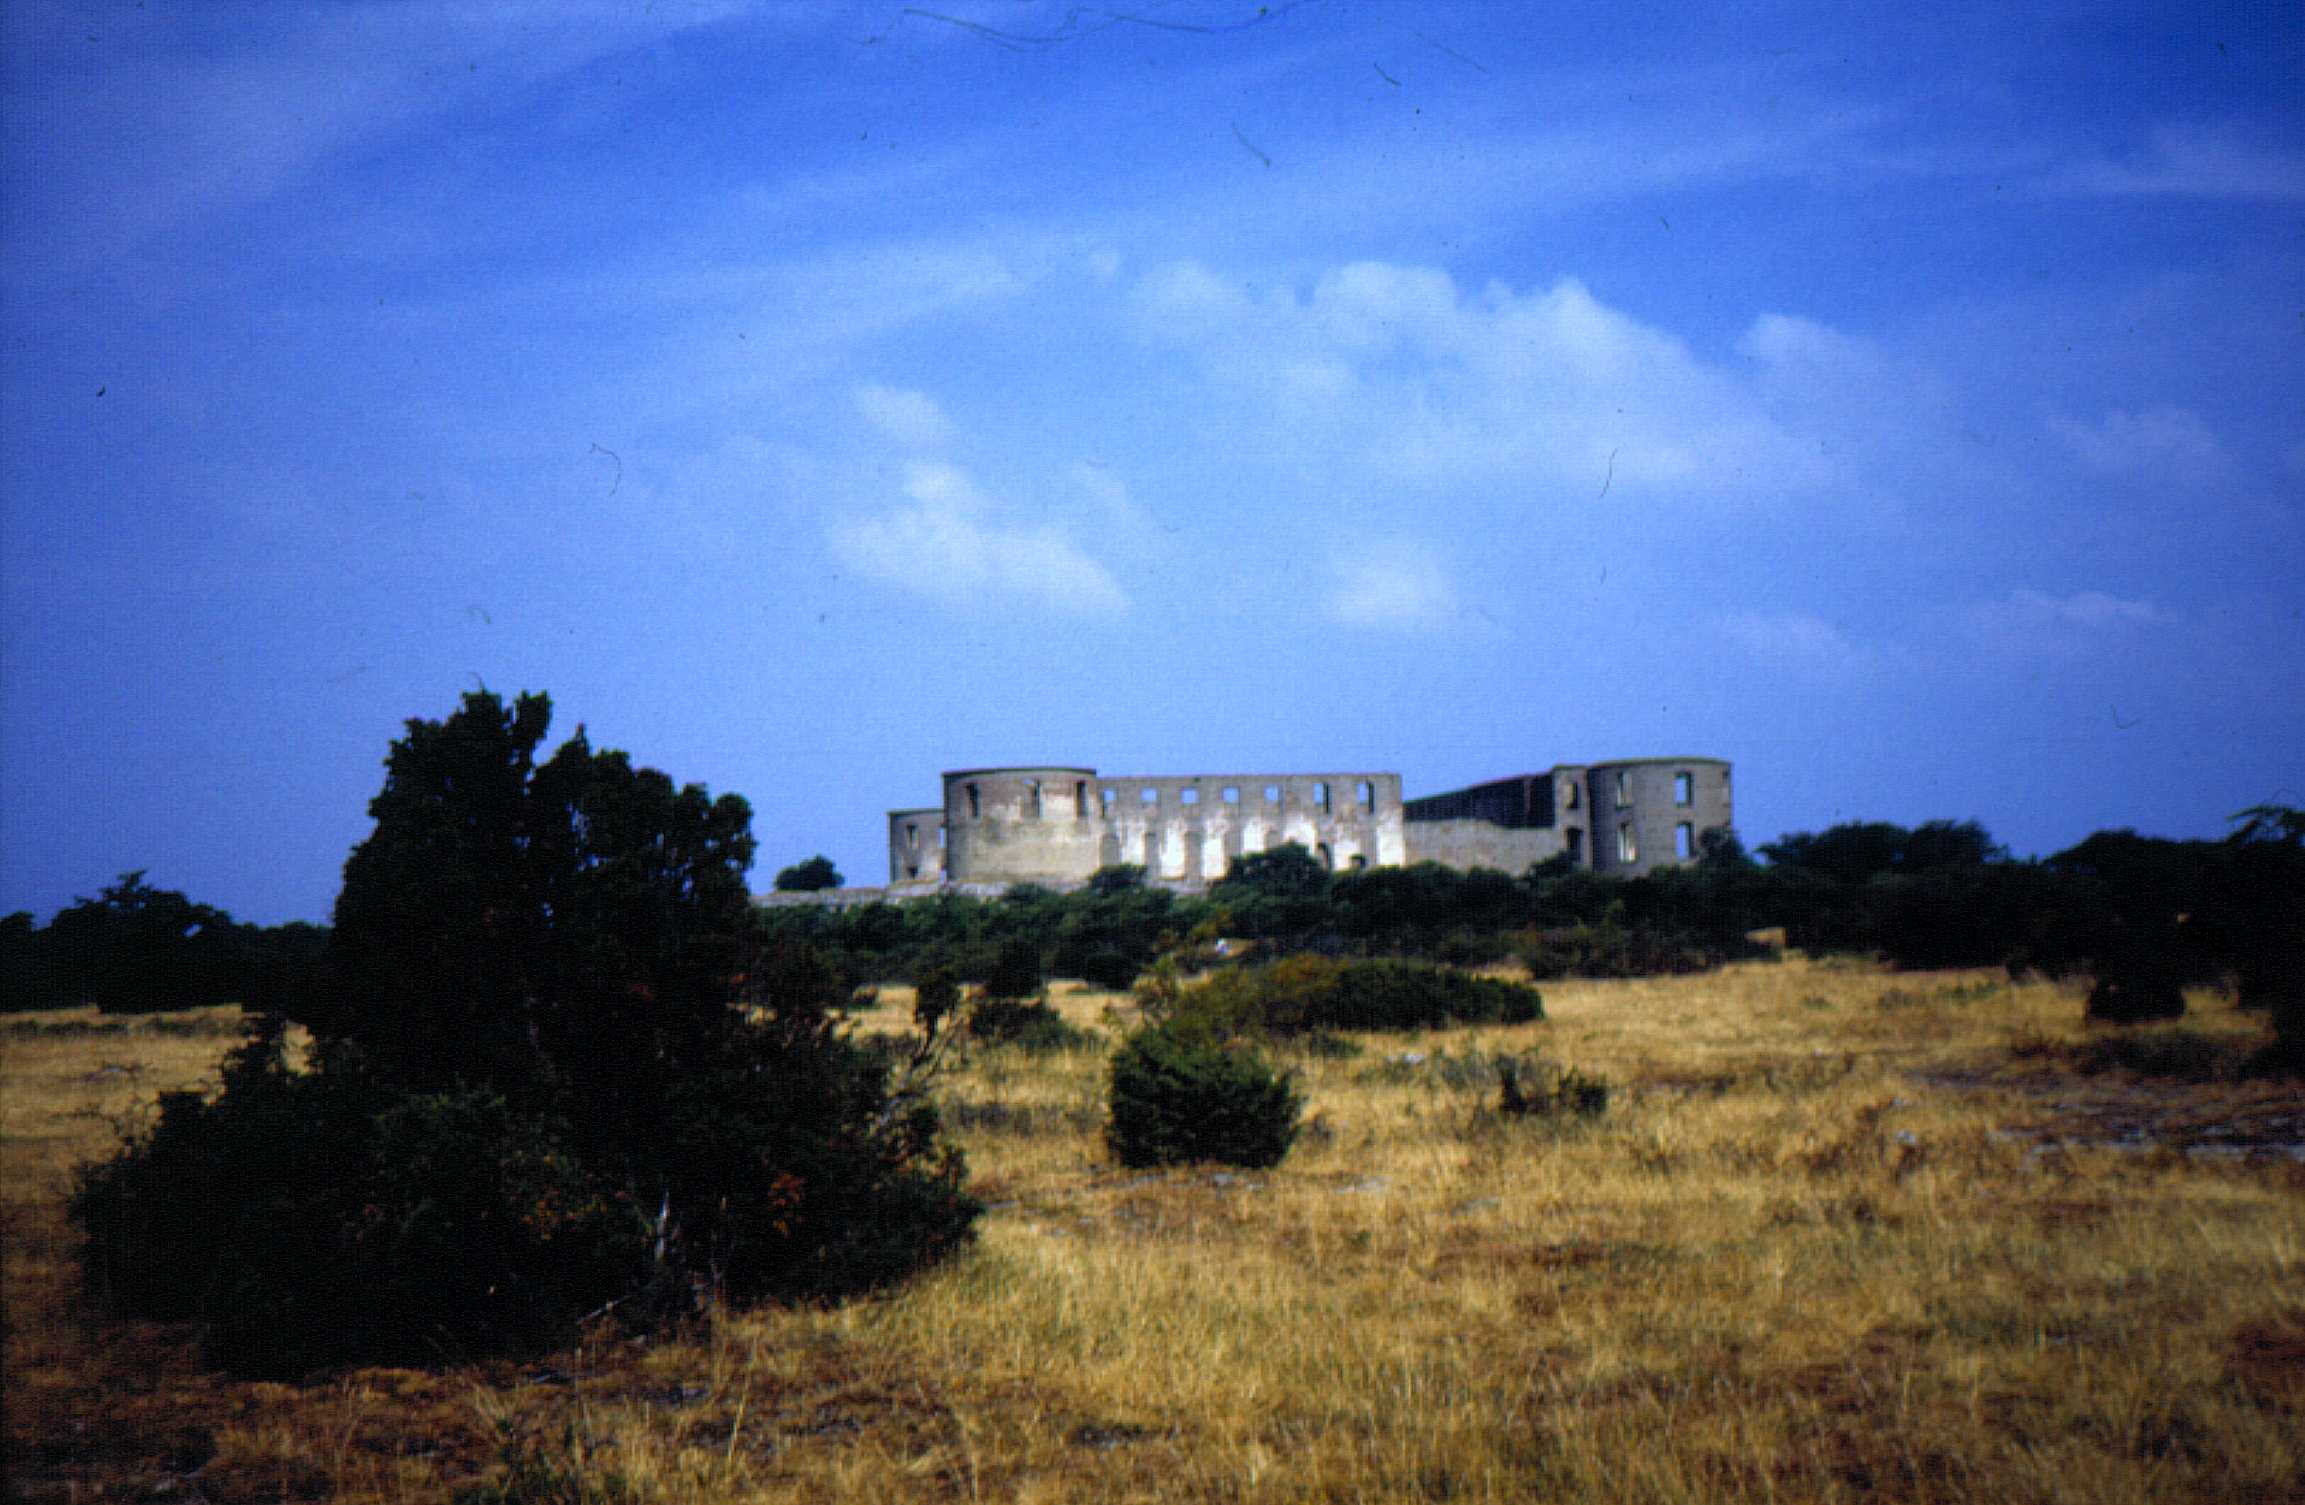 Borgholm's ruined castle, which forerunner was the stronghold where king Björn reside in 830. Photo in 1999 by Kjell Åberg